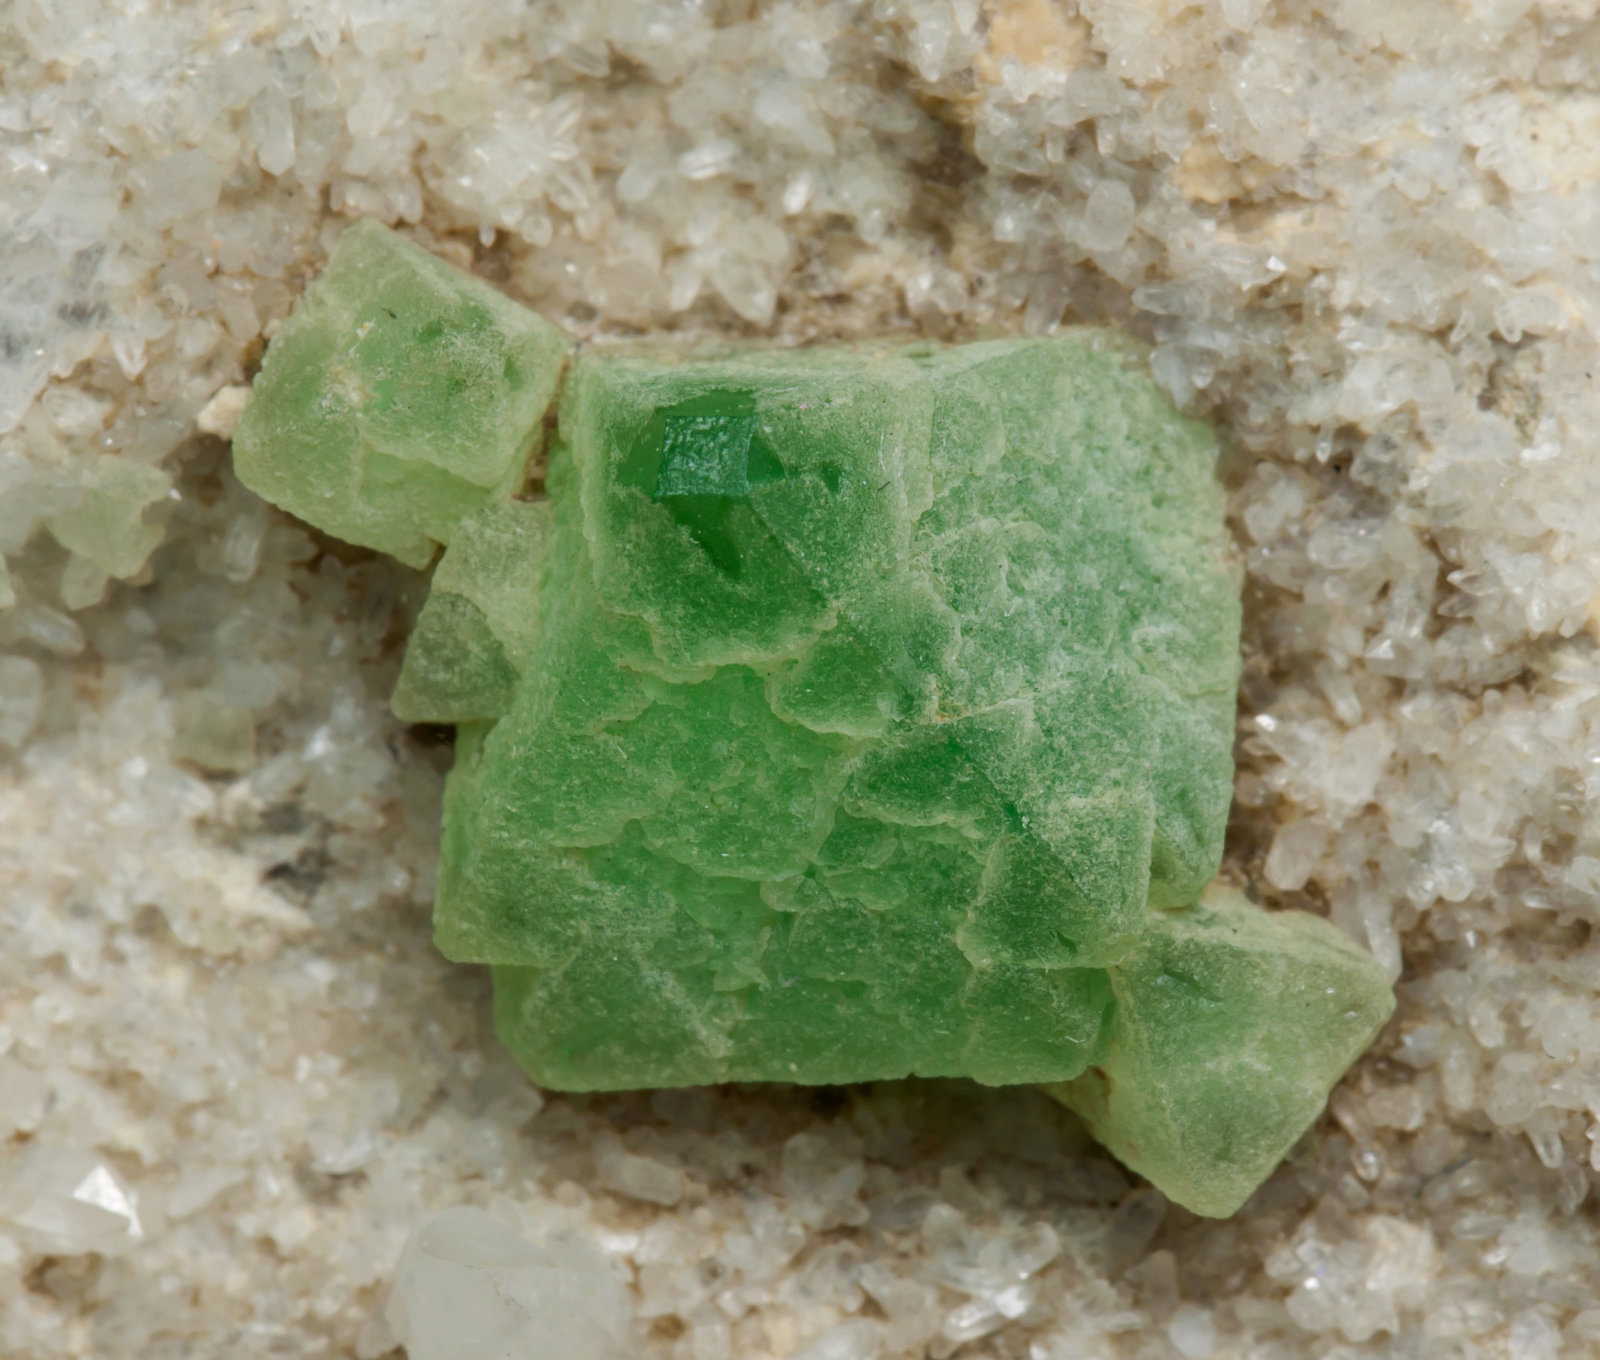 specimens/s_imagesAC5/Fluorite-NG60AC5d.jpg